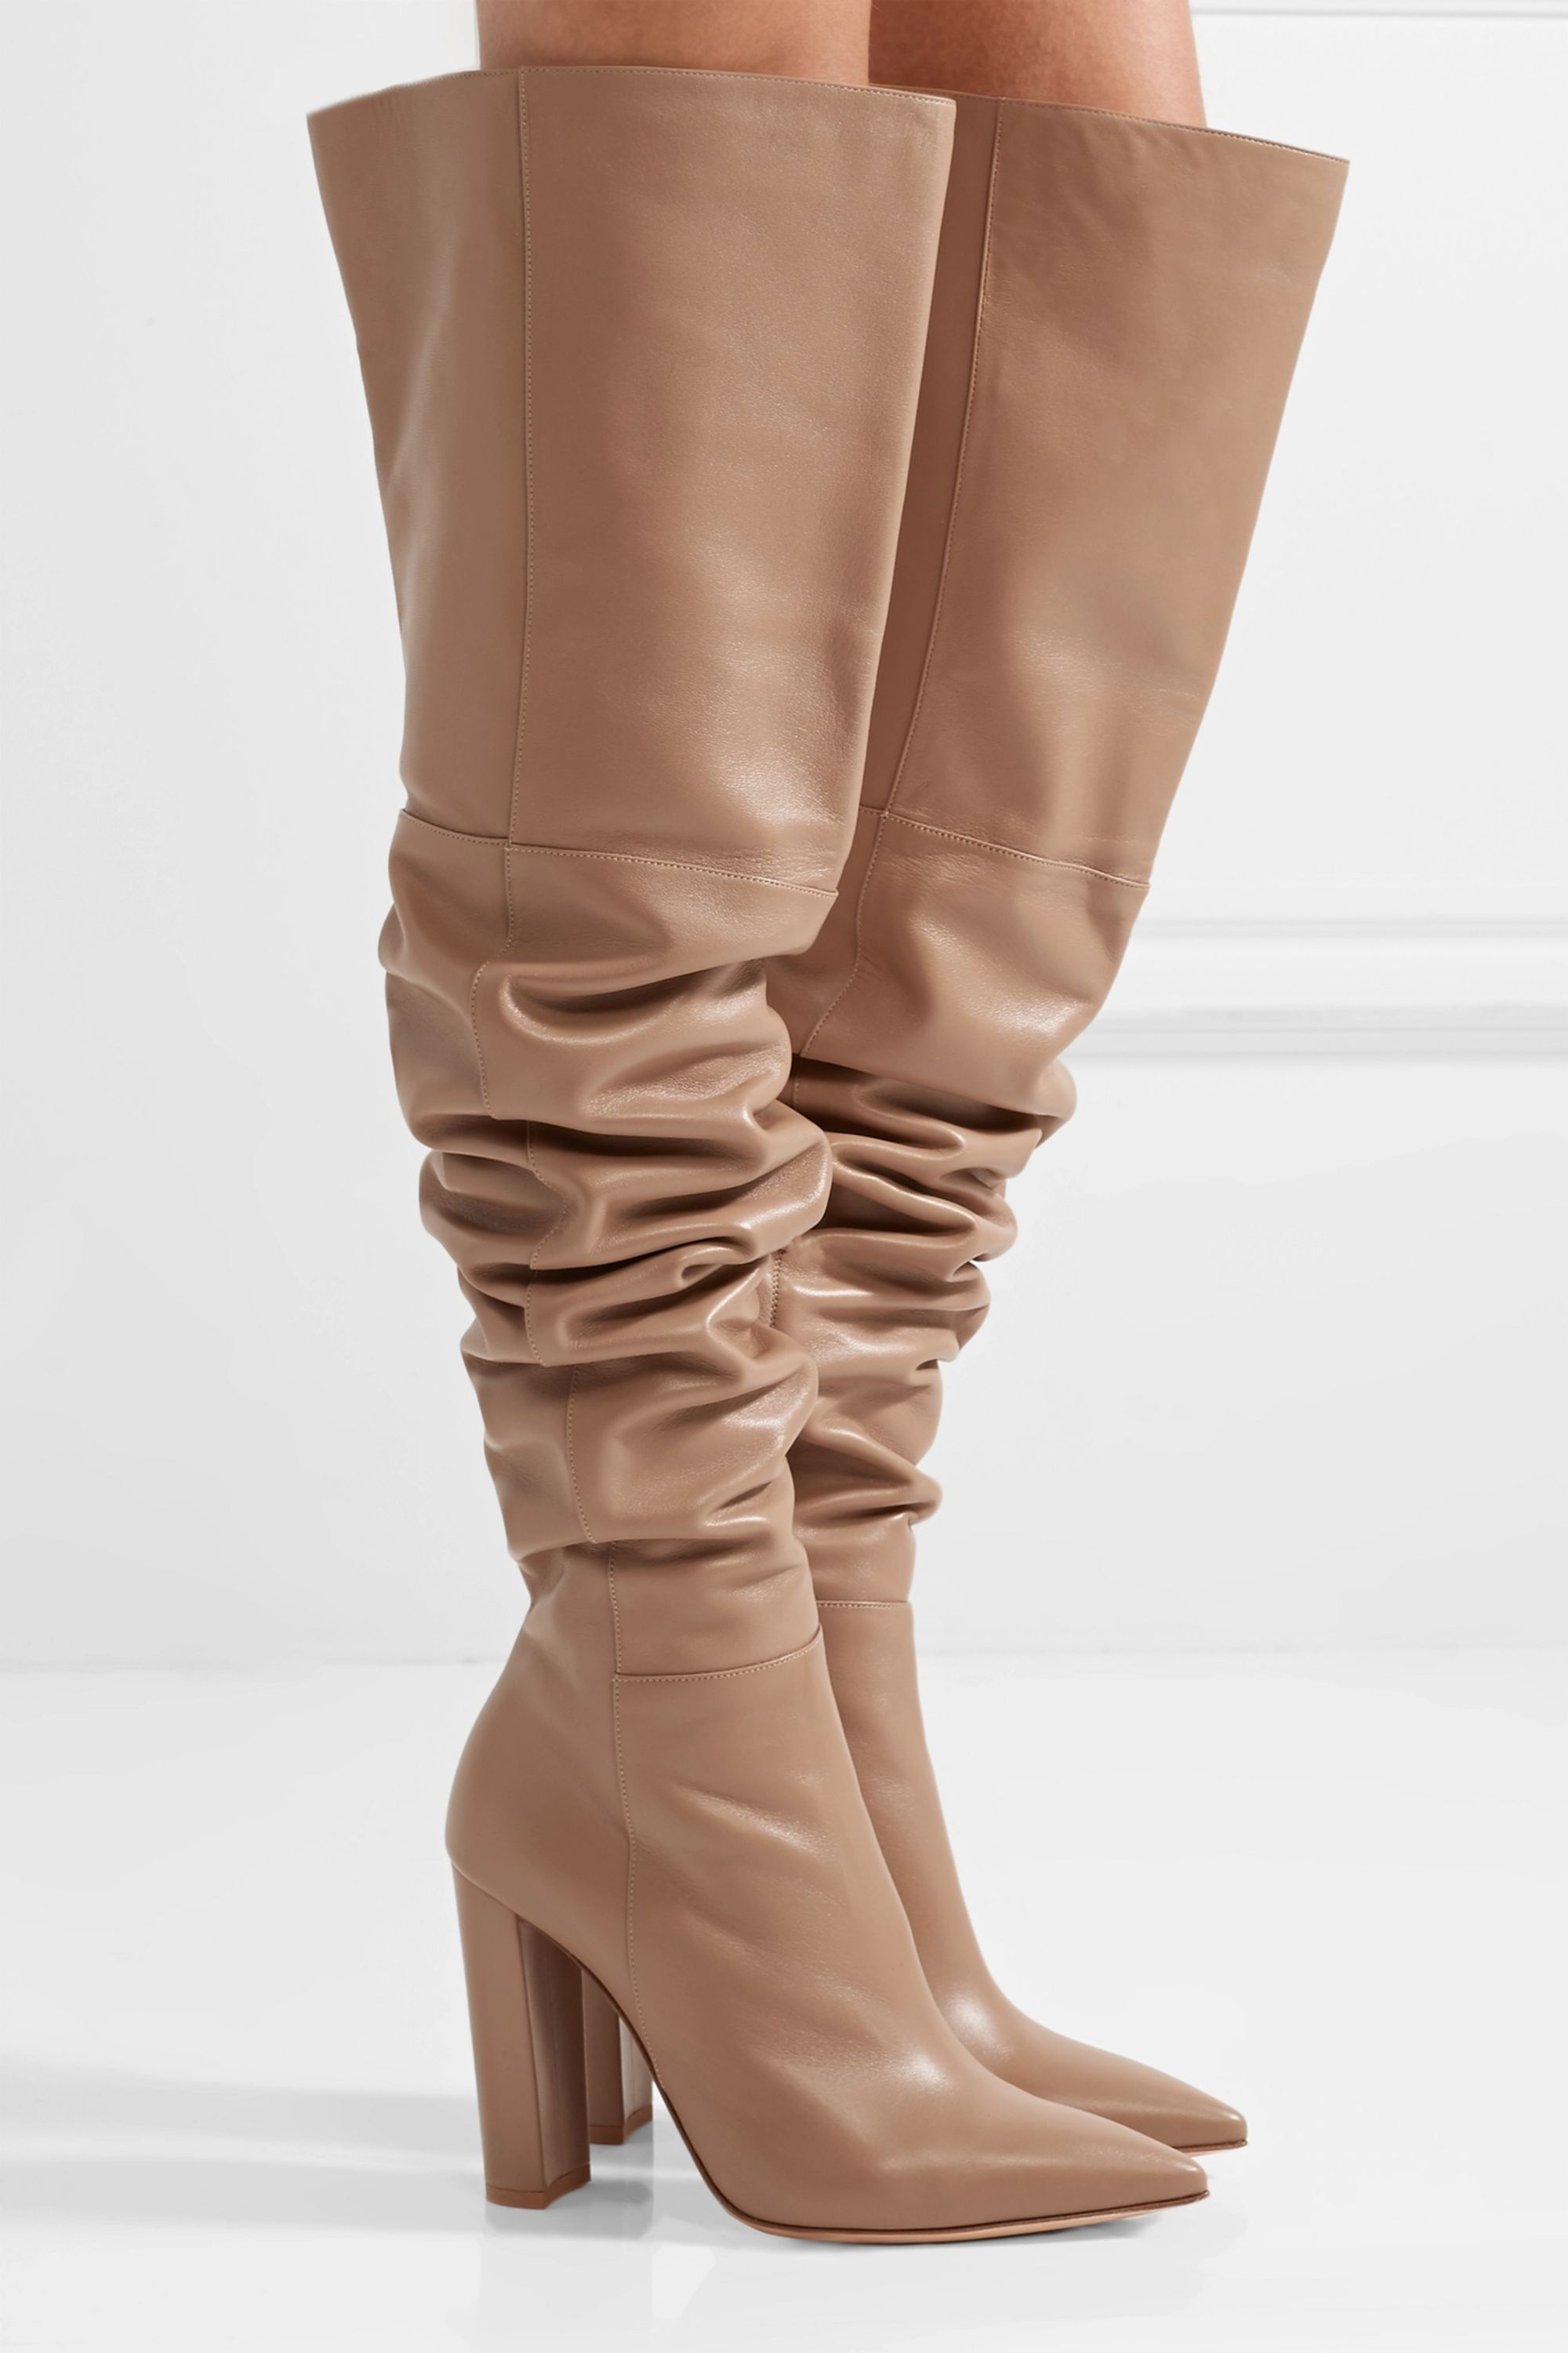 Gianvito Rossi 100 leather over-the-knee boots